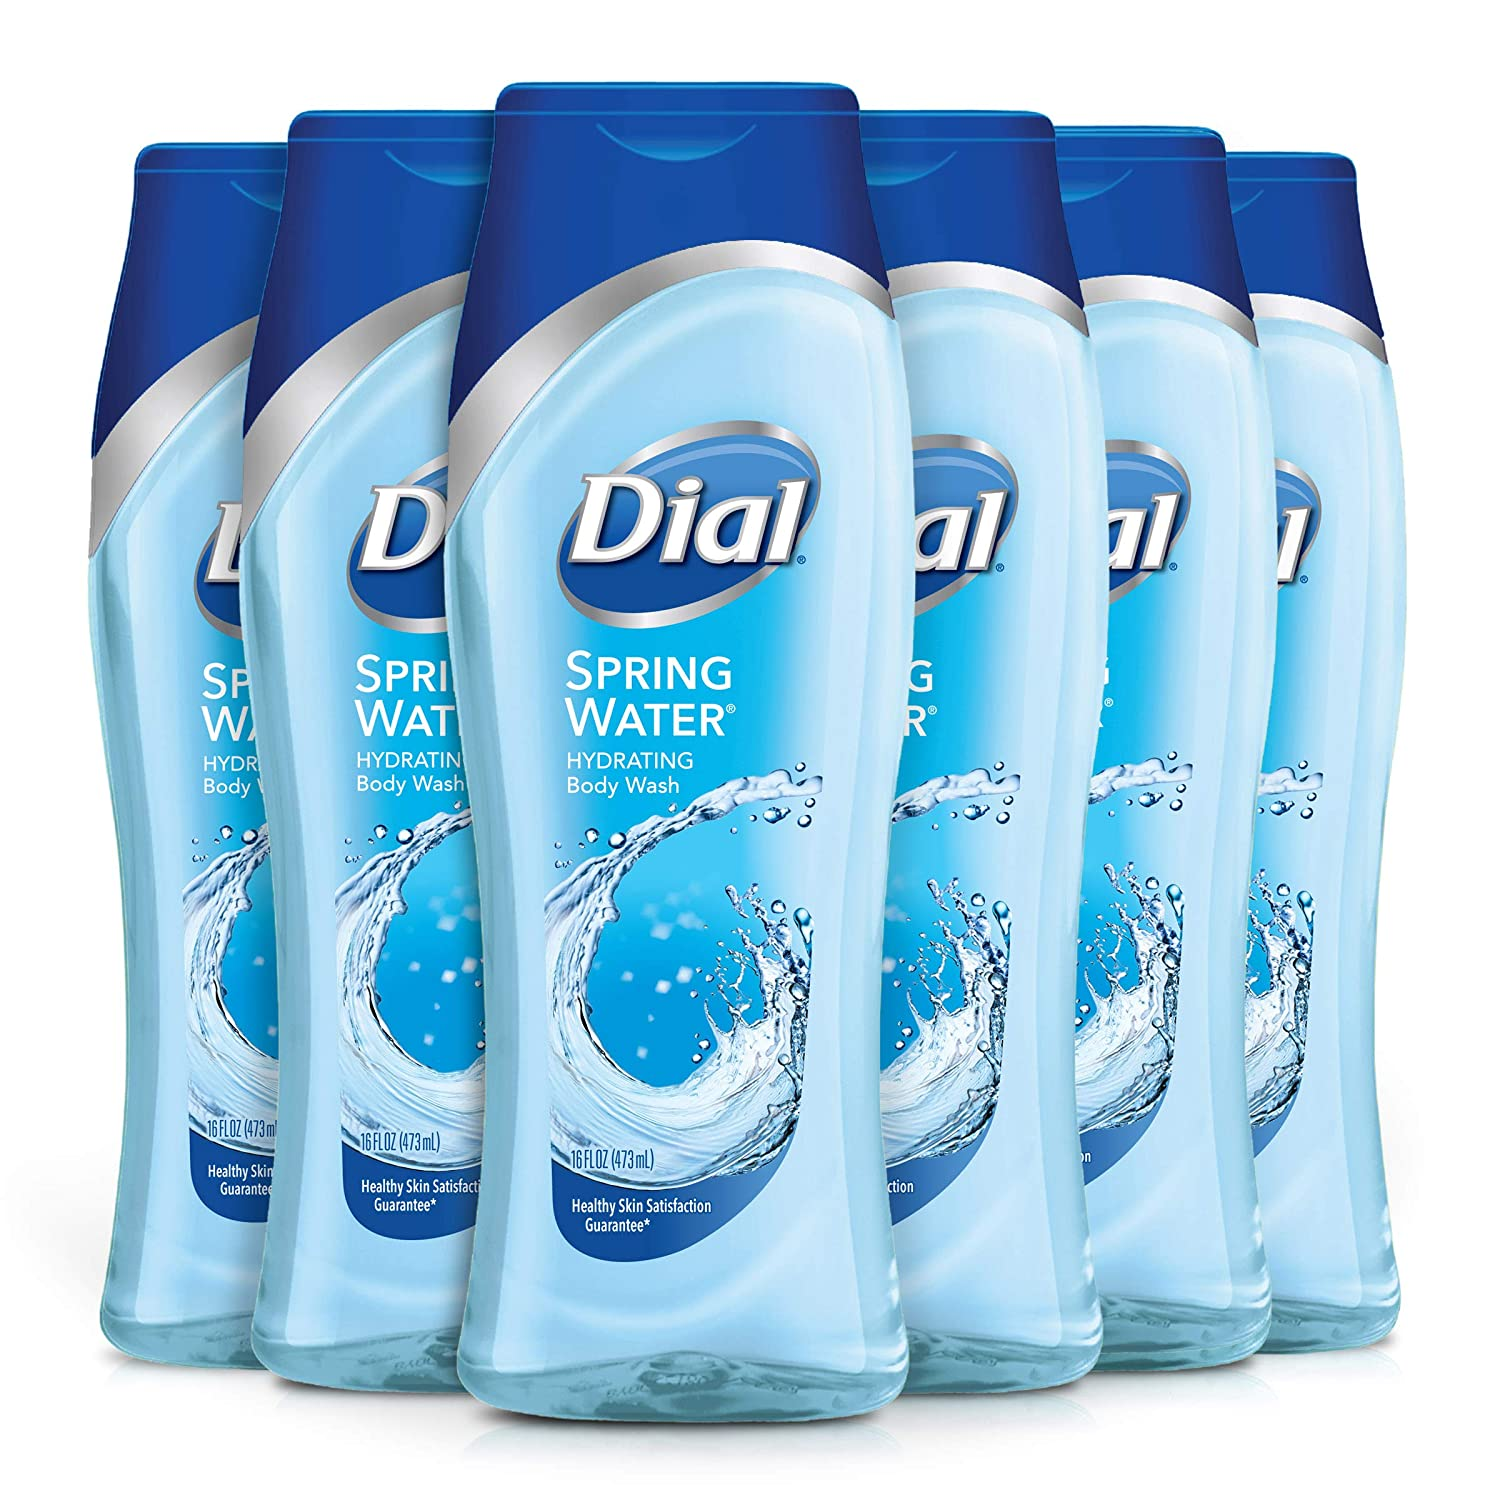 Dial Body Wash, Spring Water with All Day Freshness, 16 Fluid Ounces (Pack of 6) 00017000026534